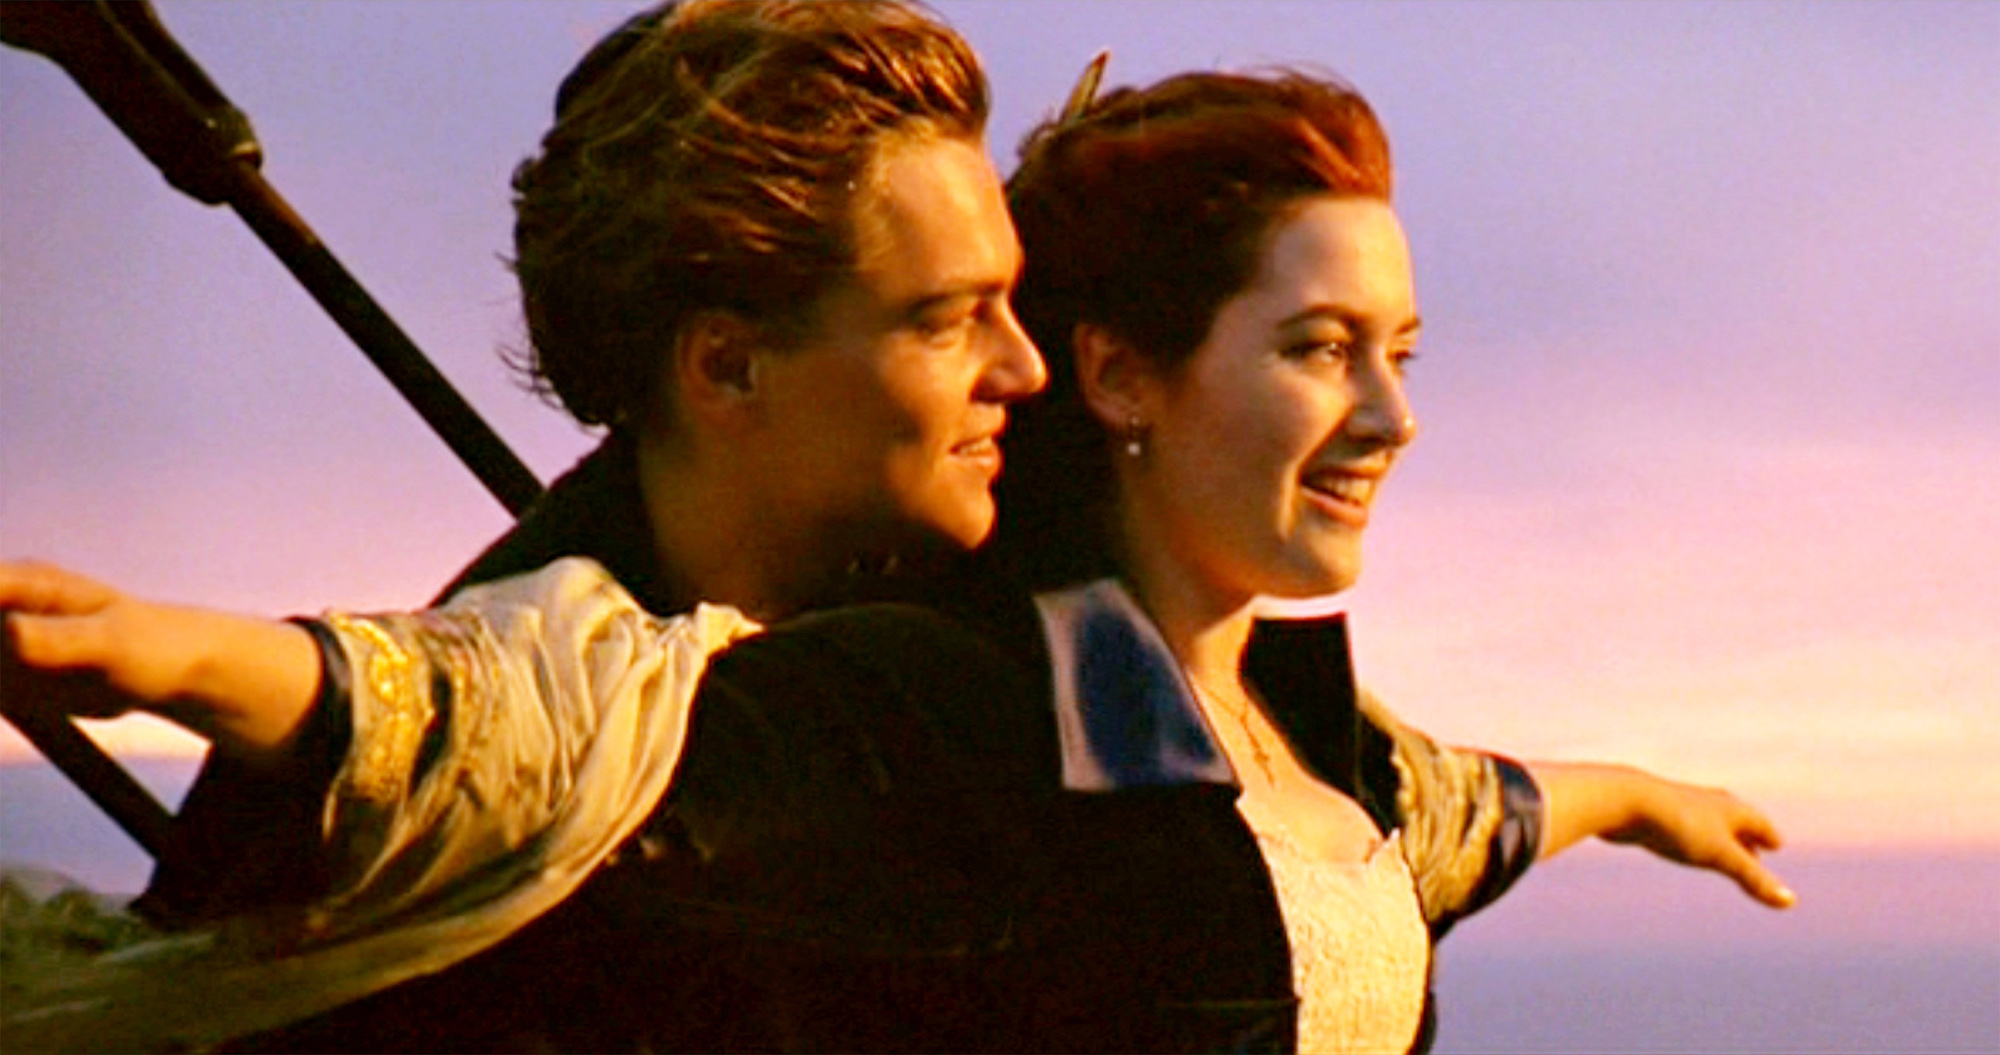 Jack Dawson (Leonardo DiCaprio) and Rose (Kate Winslet) in one of the most iconic scenes from the movie 'Titanic,' written and directed by James Cameron.